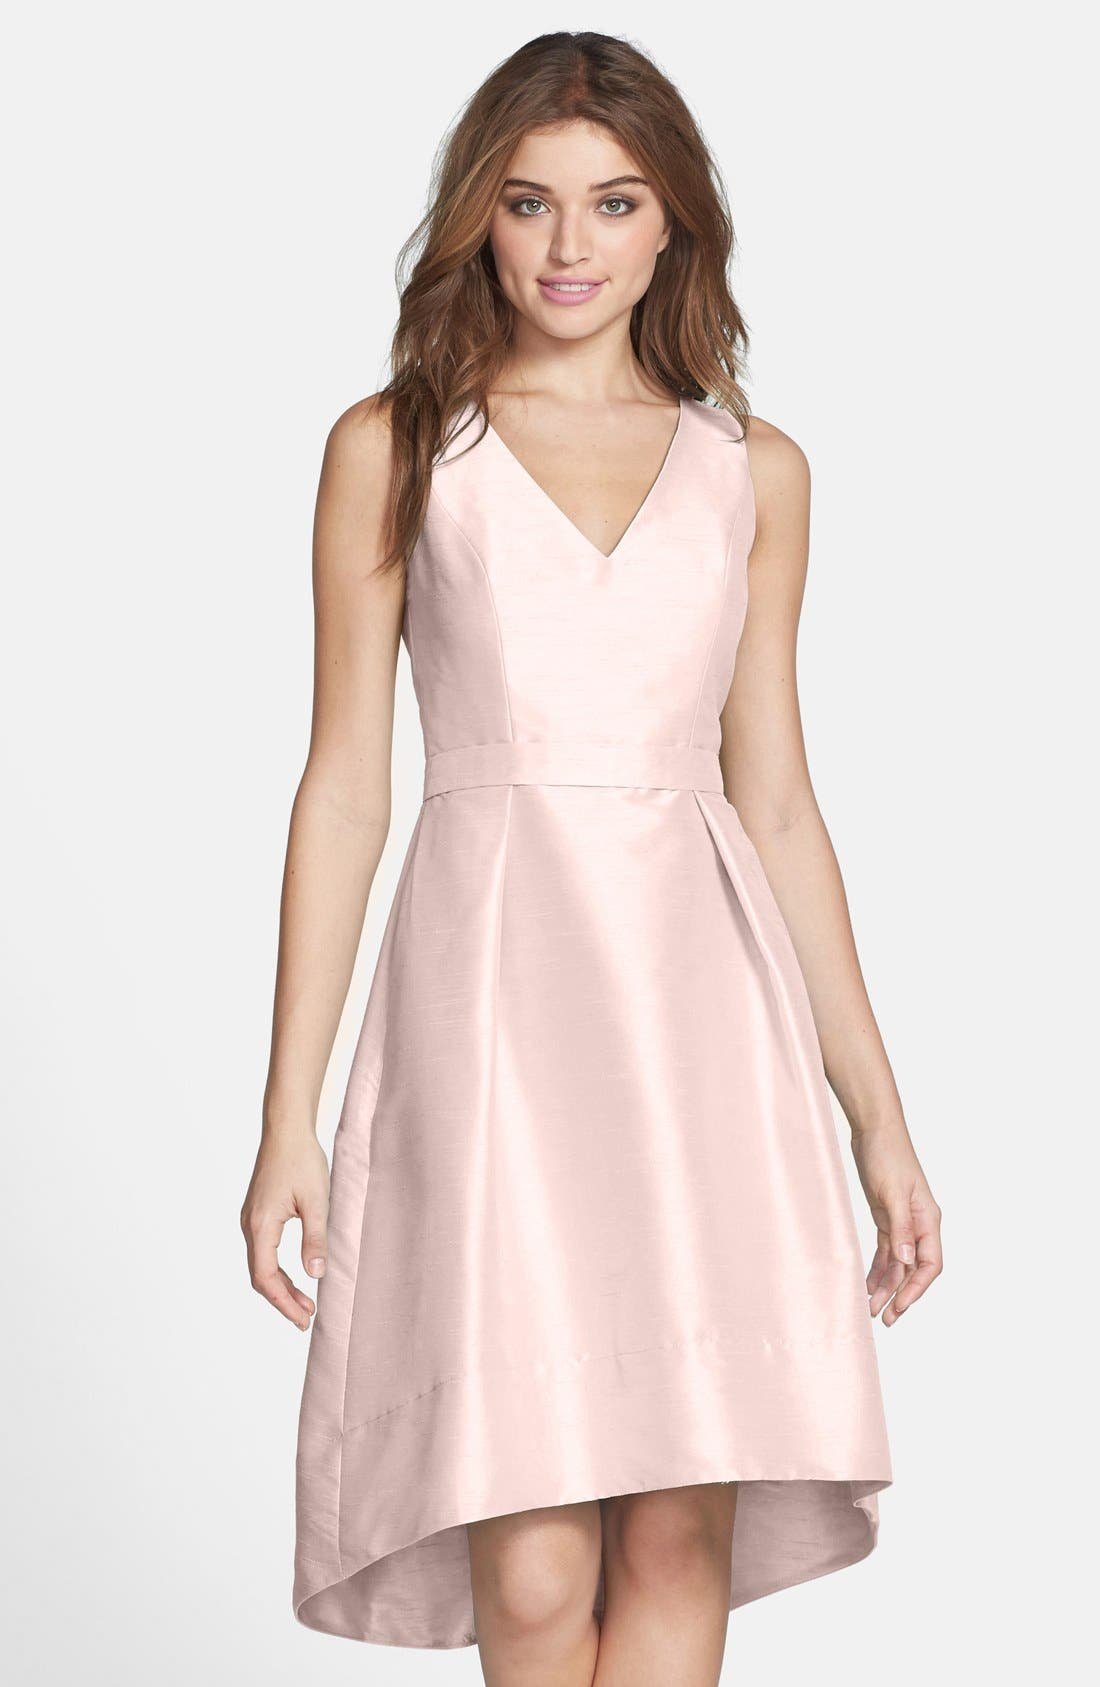 Alternate Image 1 Selected - Alfred Sung Satin High/Low Fit & Flare Dress (Online Only)